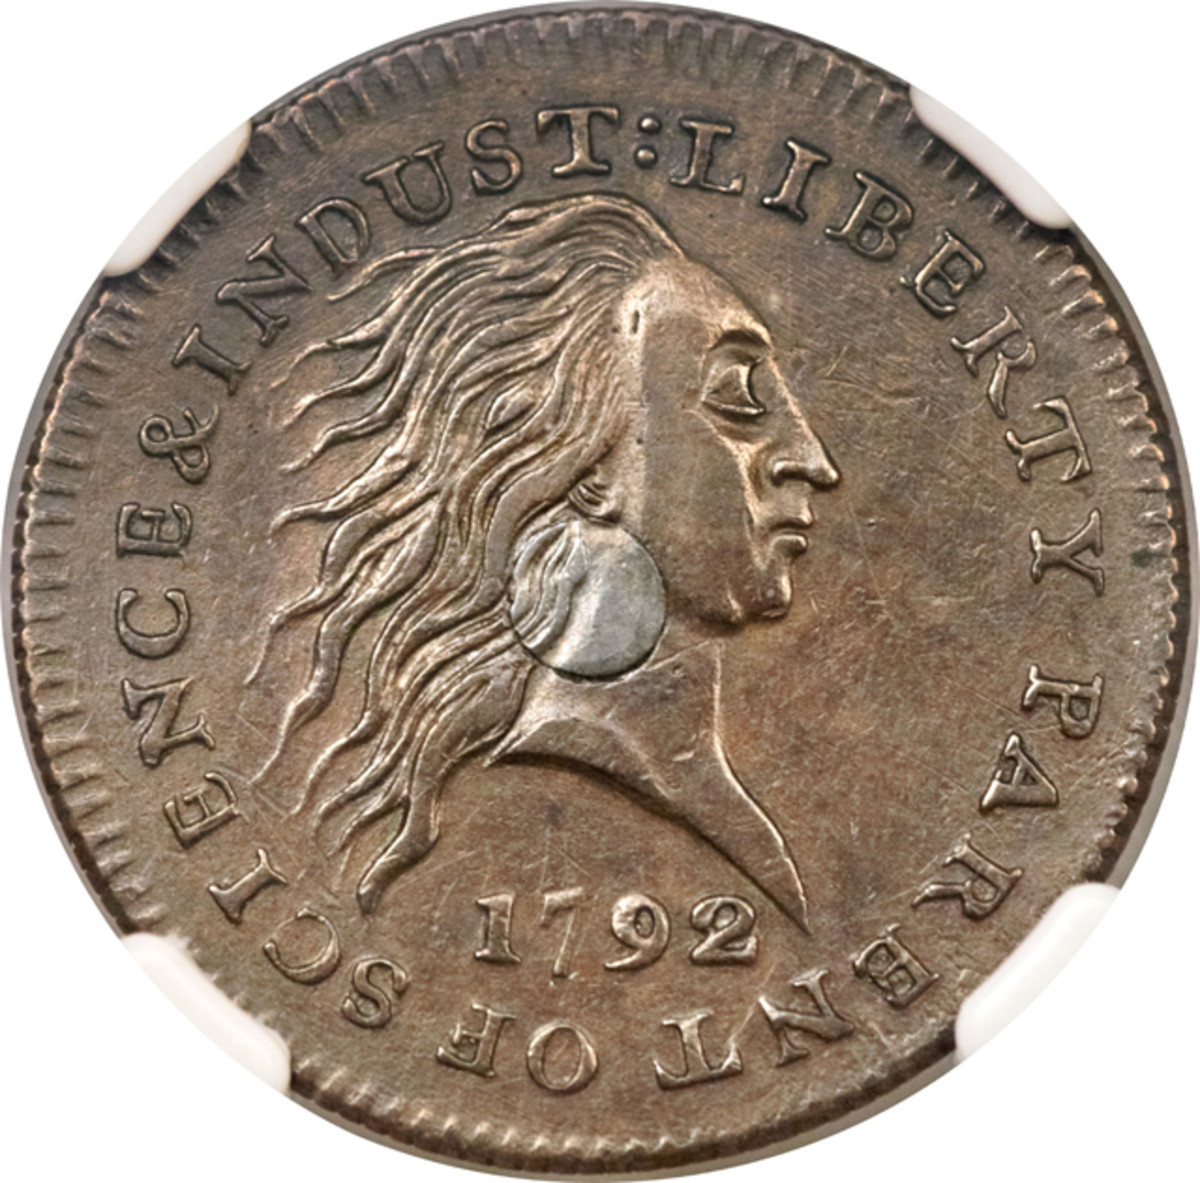 Obverse of the 1792 silver-center cent.